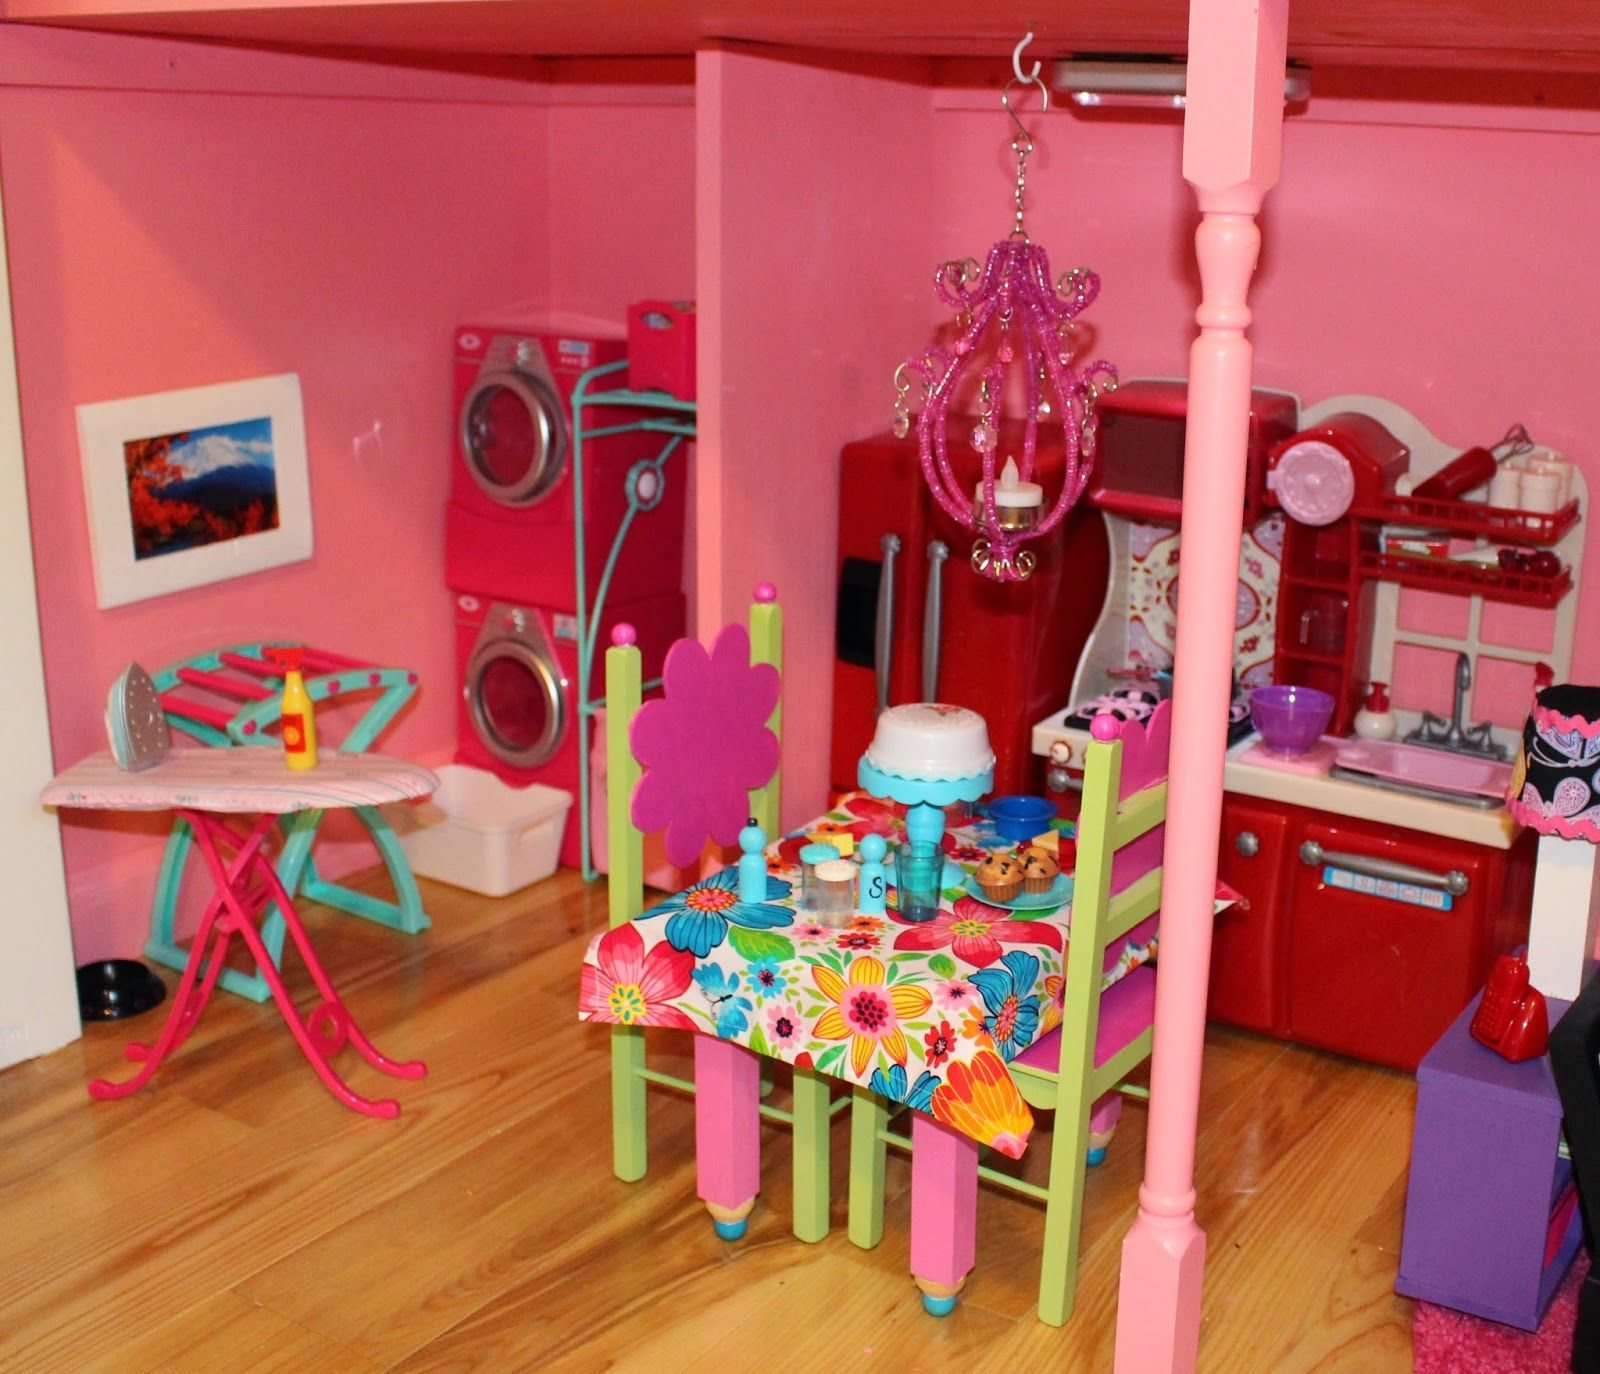 Pin by Kristi Taylor on American Girl House | American